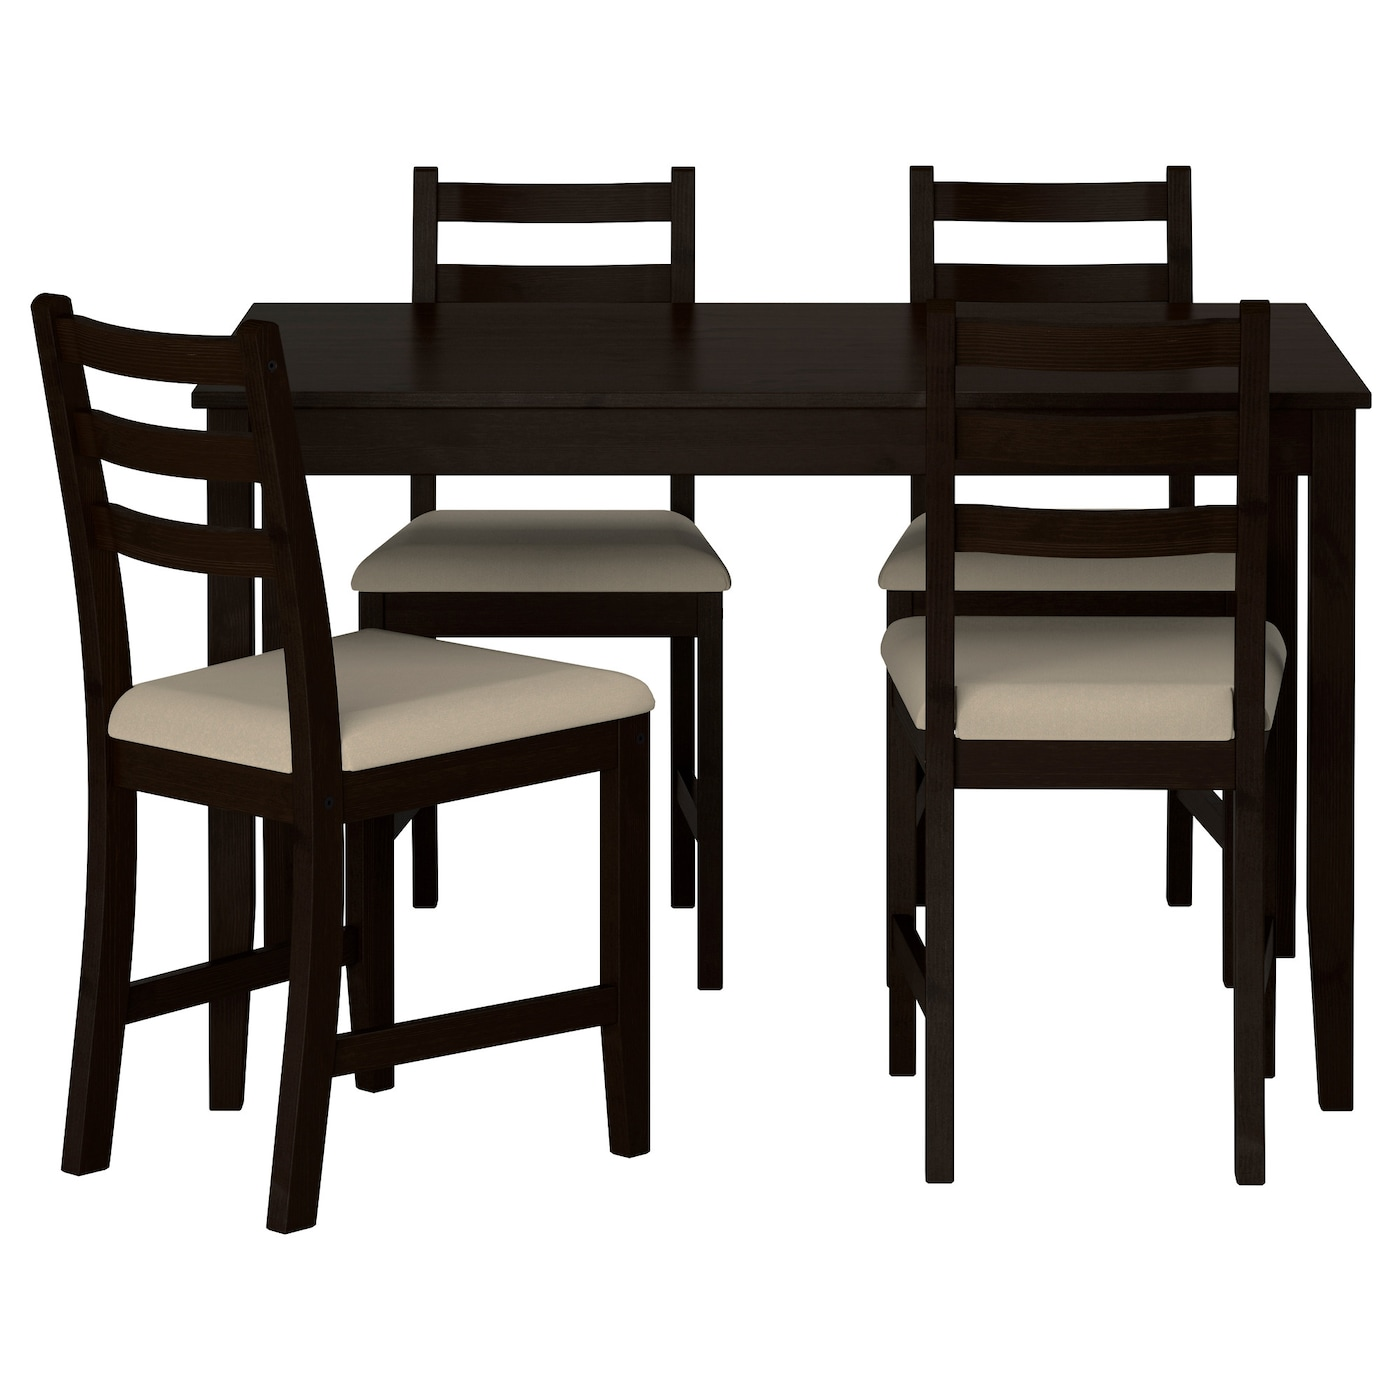 Lerhamn table and 4 chairs black brown ramna beige 118x74 for Small kitchen table with 4 chairs